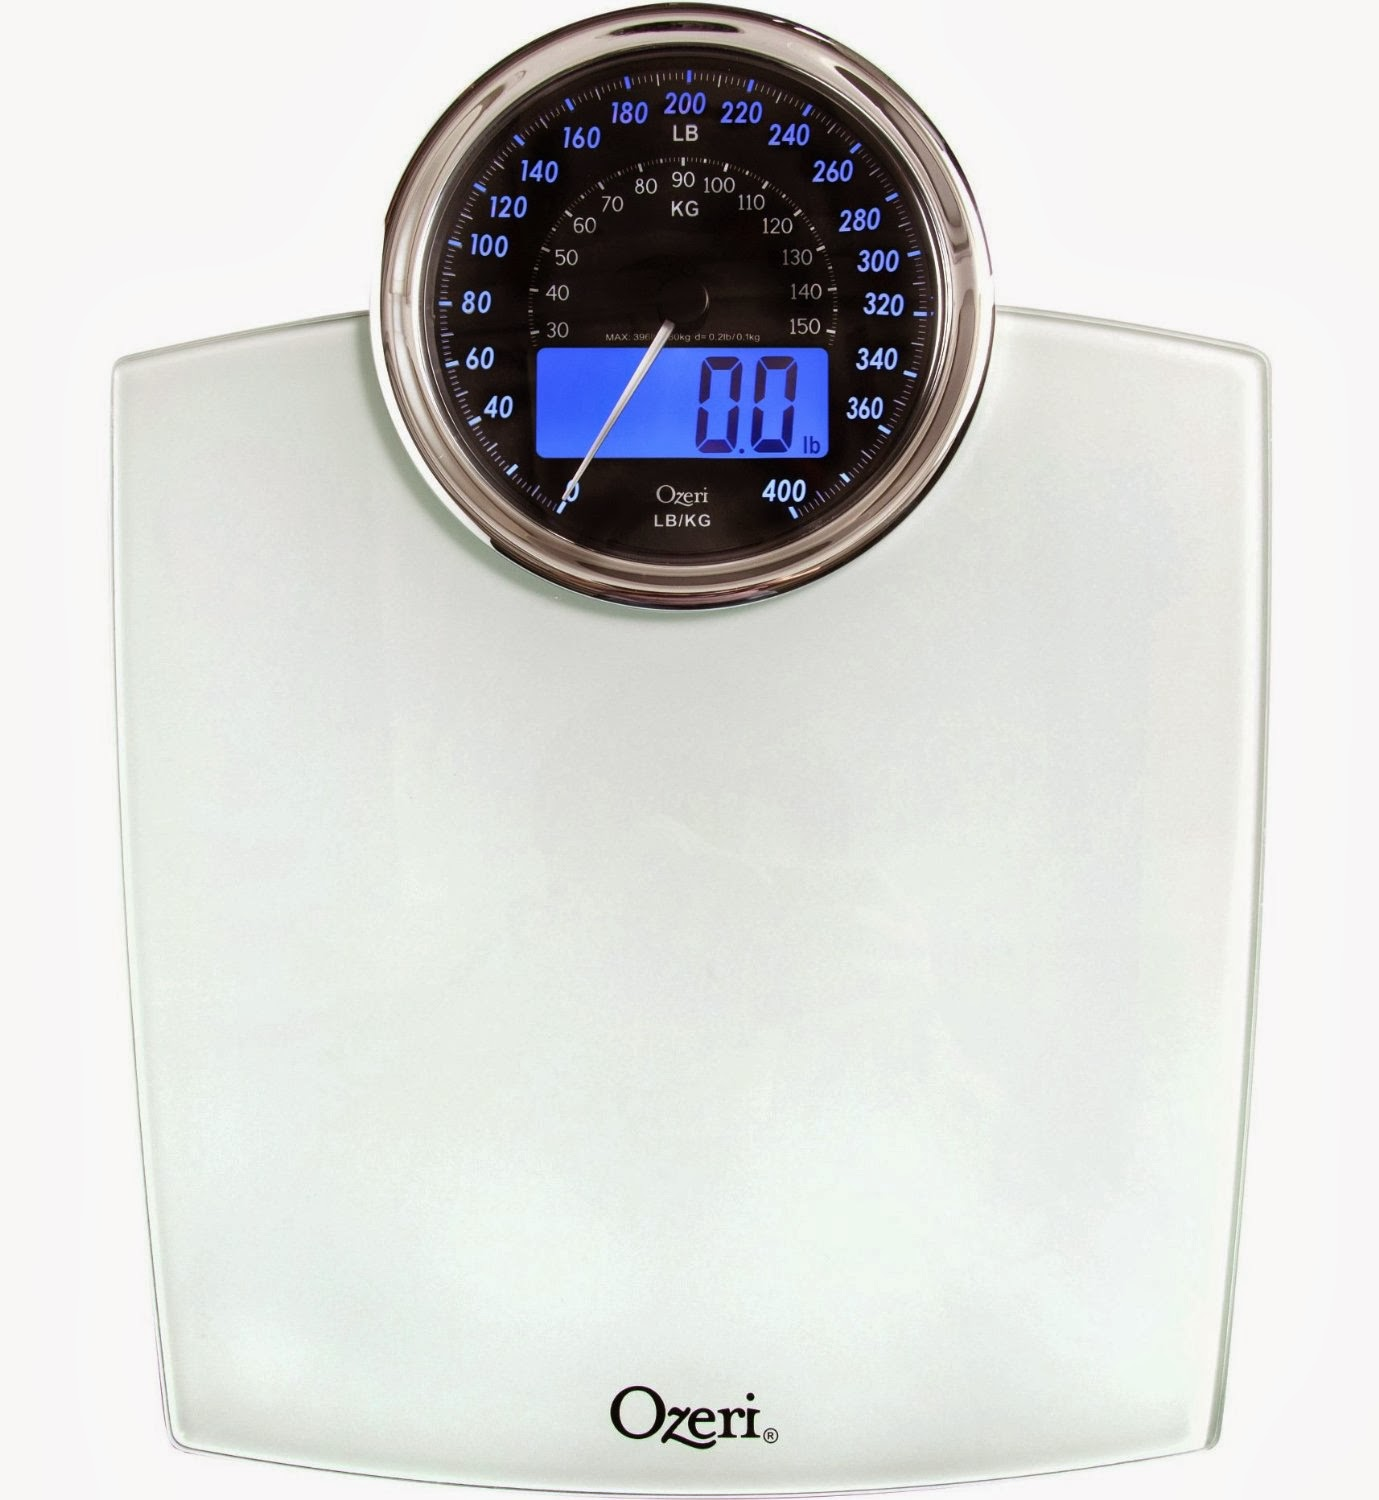 Ozeri Bathroom Scale with Electro-Mechanical Weight Dial